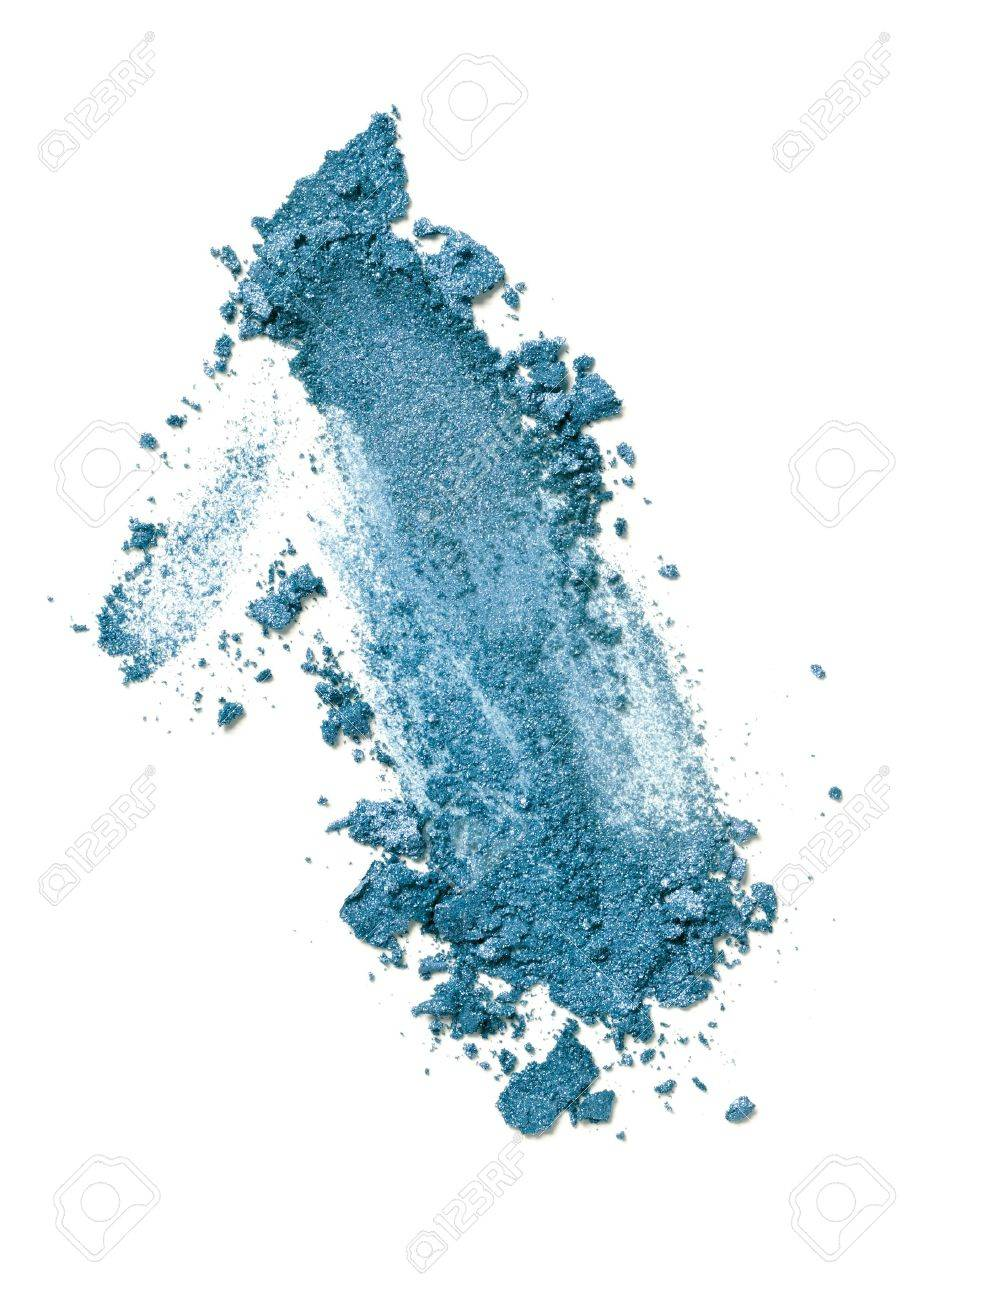 close up of  a make up powder on white background Stock Photo - 10511580